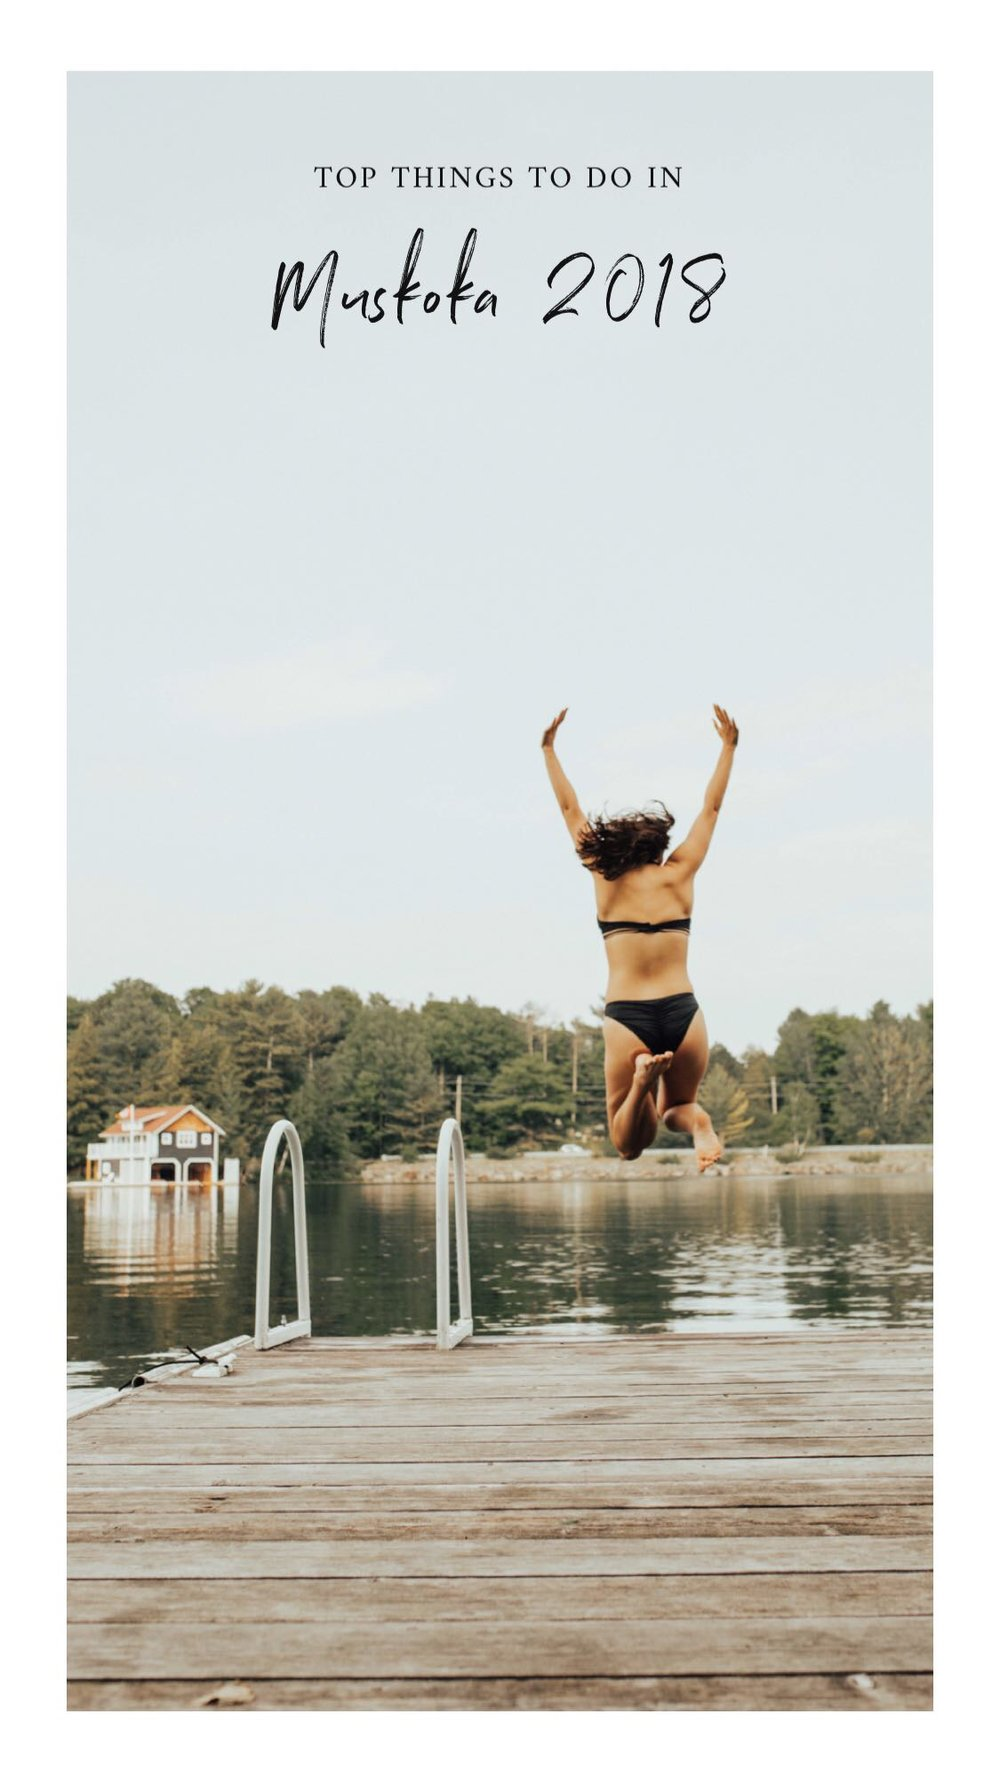 muskoka, ontario - sunset boat rides, cozying by the fire + cottage country livin'.